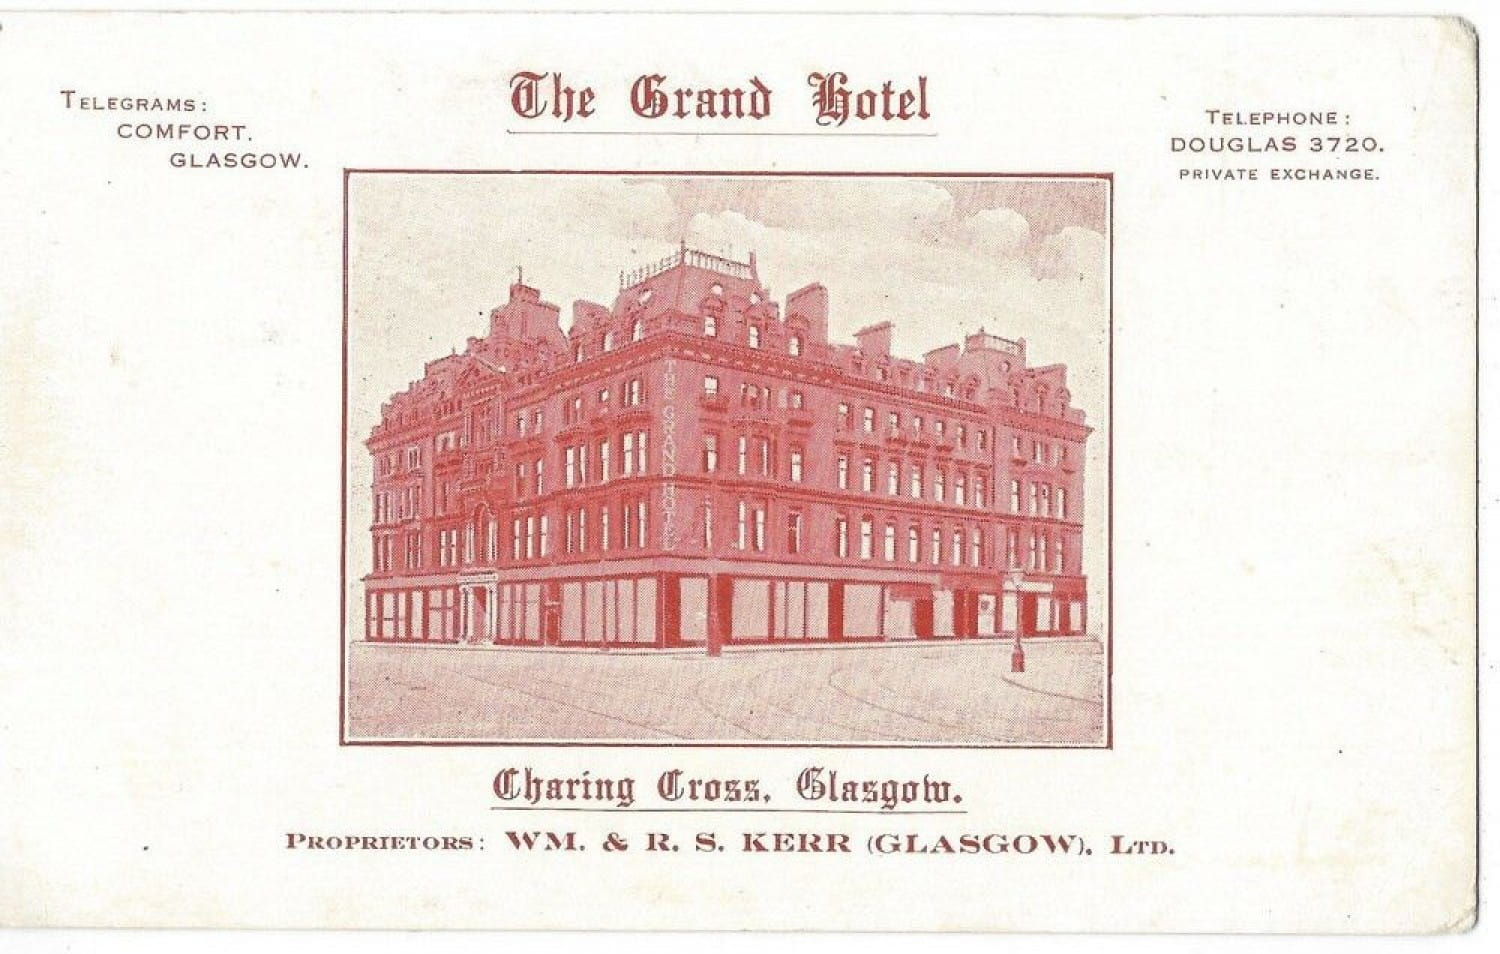 One of the hotel's advertising cards